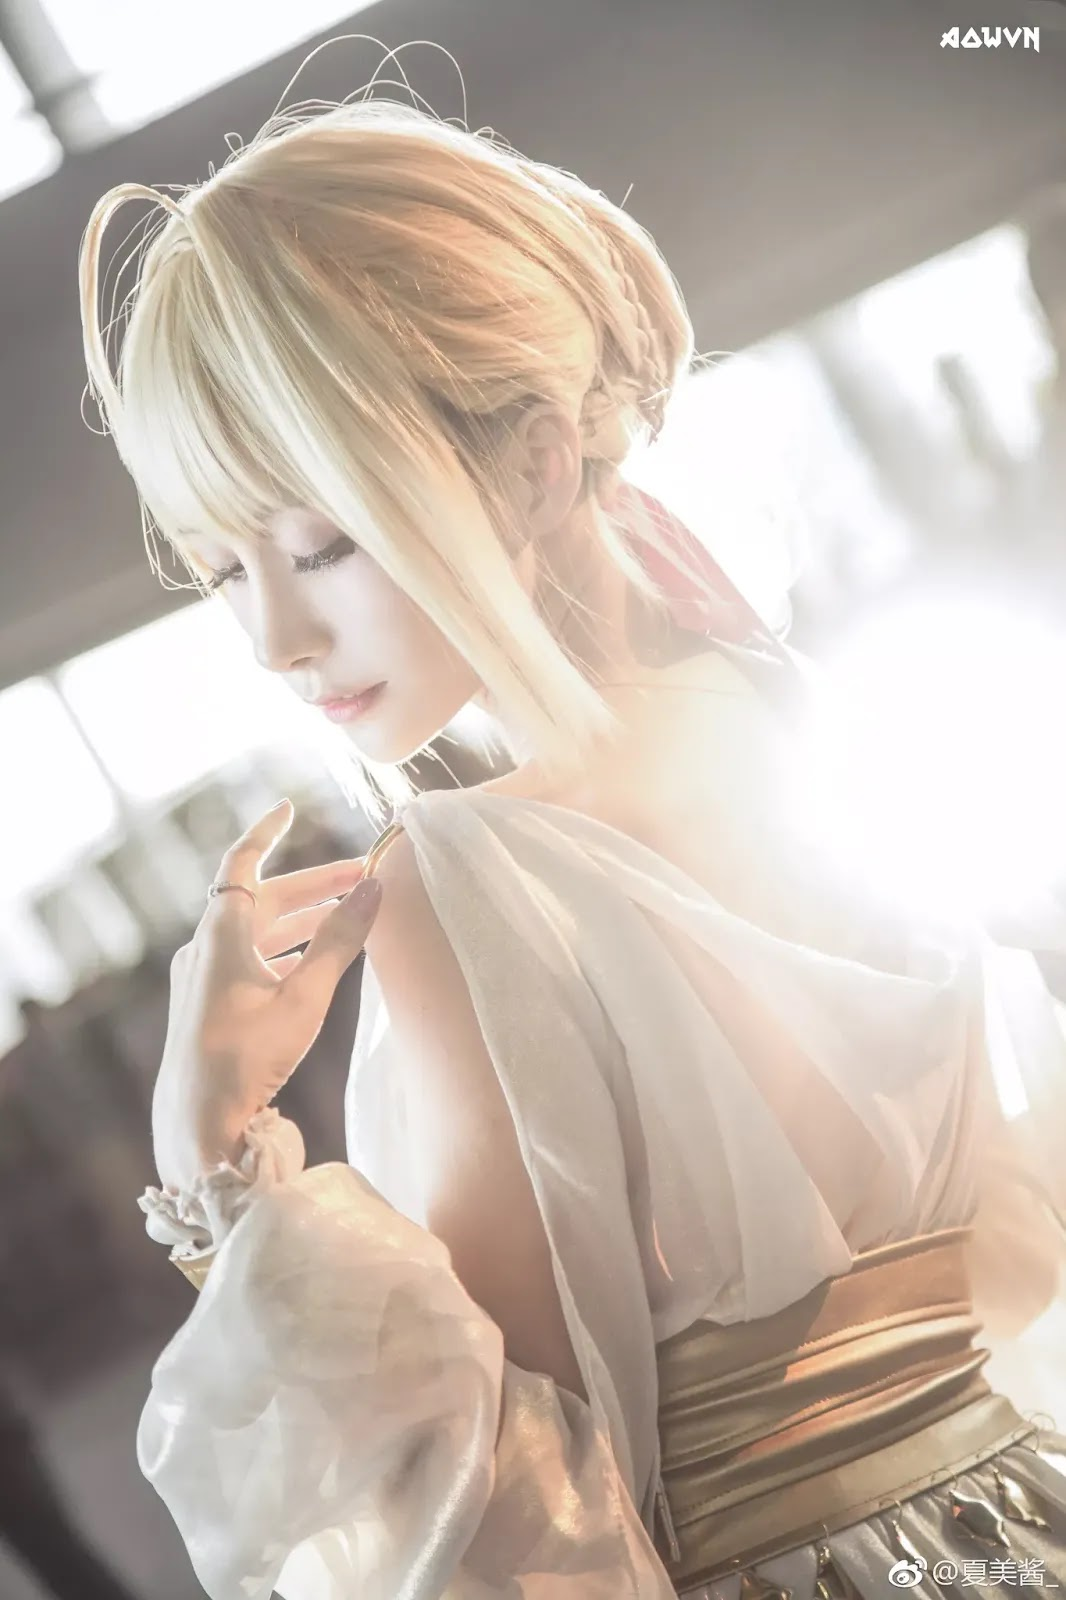 AowVN.org minz%2B%252813%2529 - [ Cosplay ] Nero - Saber anime Fate by Xia Mei Jiang tuyệt đẹp | AowVN Wallpapers